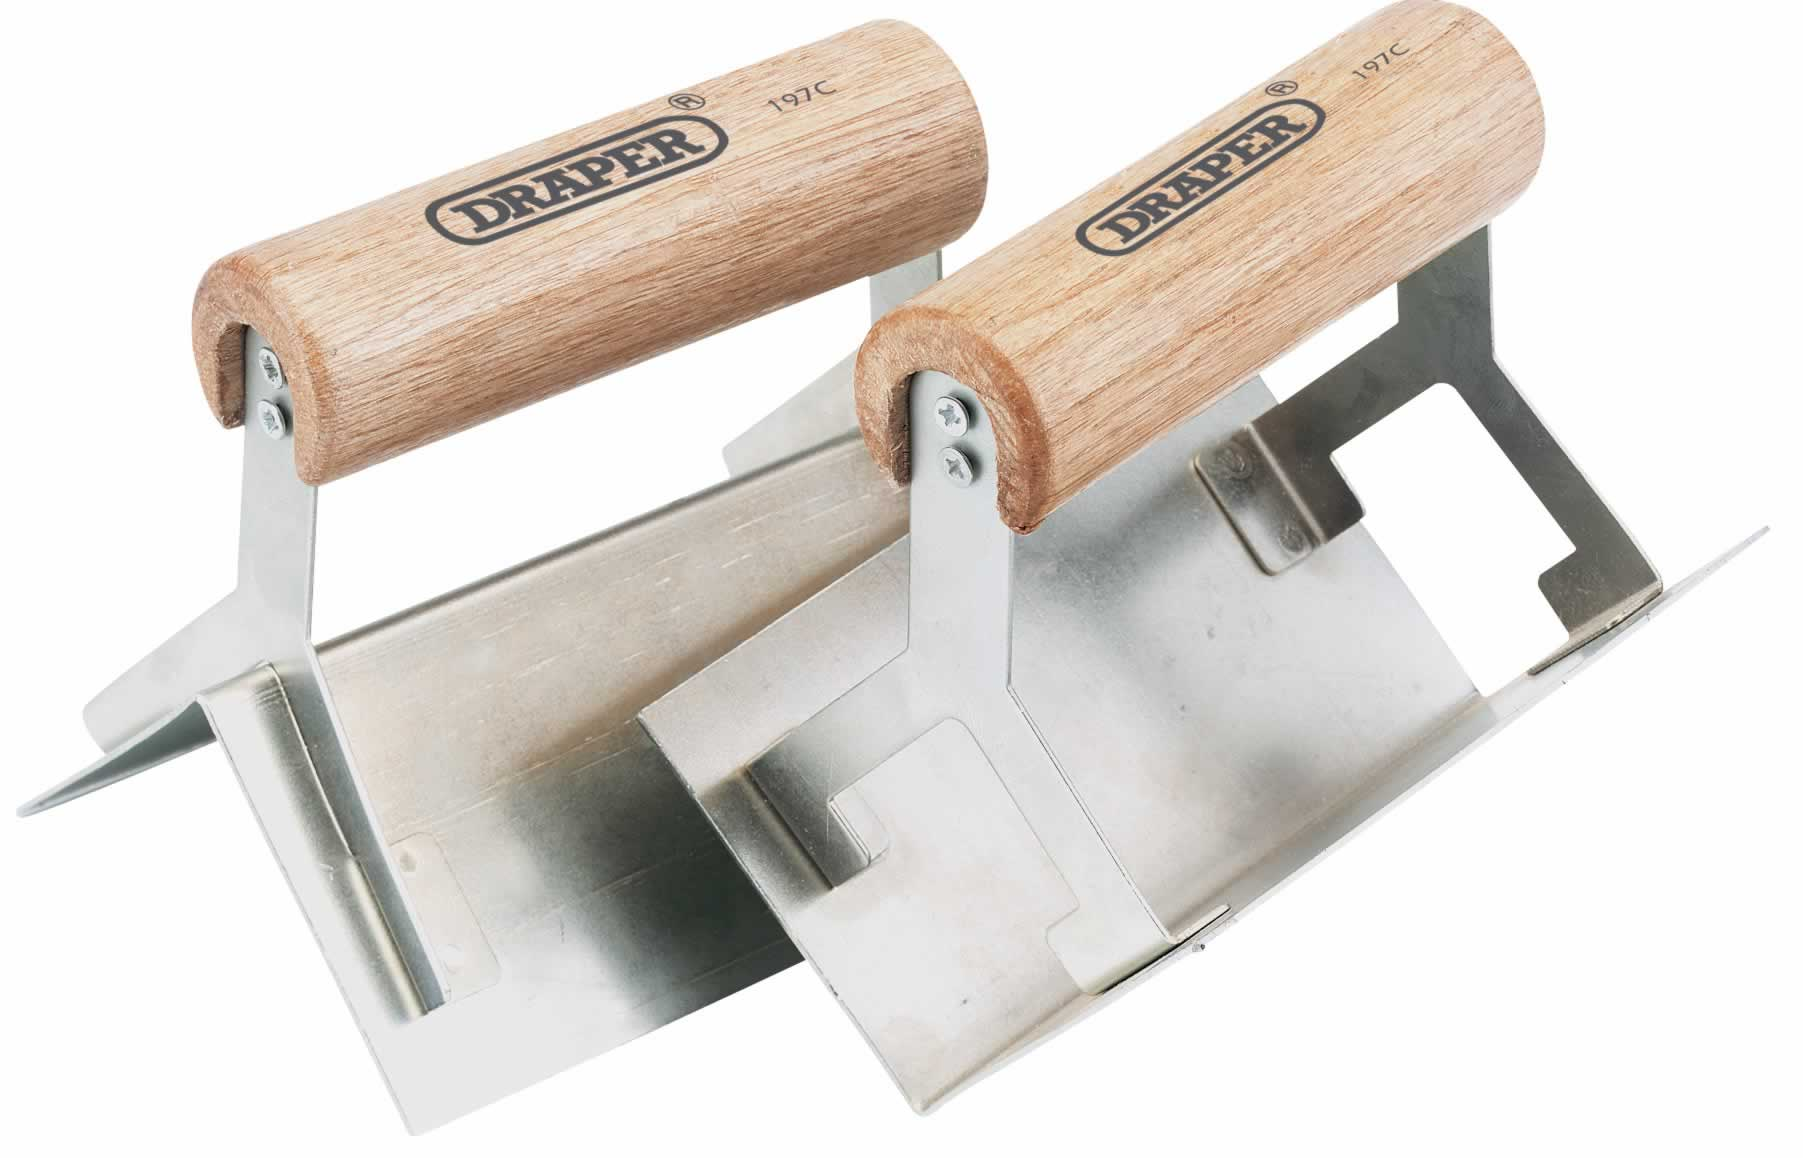 2 PIECE CORNER TROWEL SET